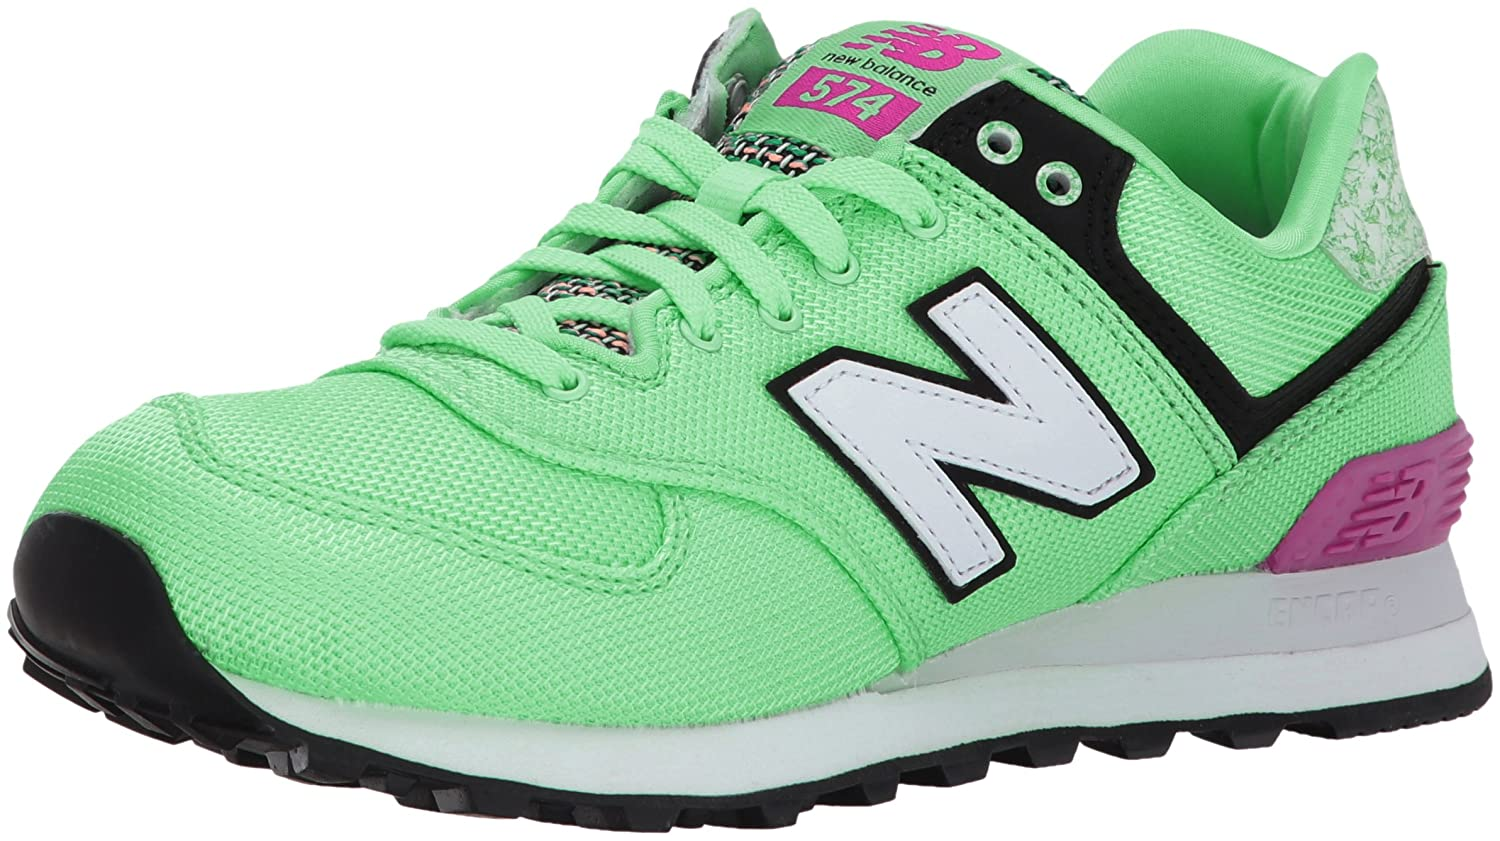 New Balance Women's 574v1 Art School Sneaker B01MRN4G3A 10 D US|Agave/Poisonberry